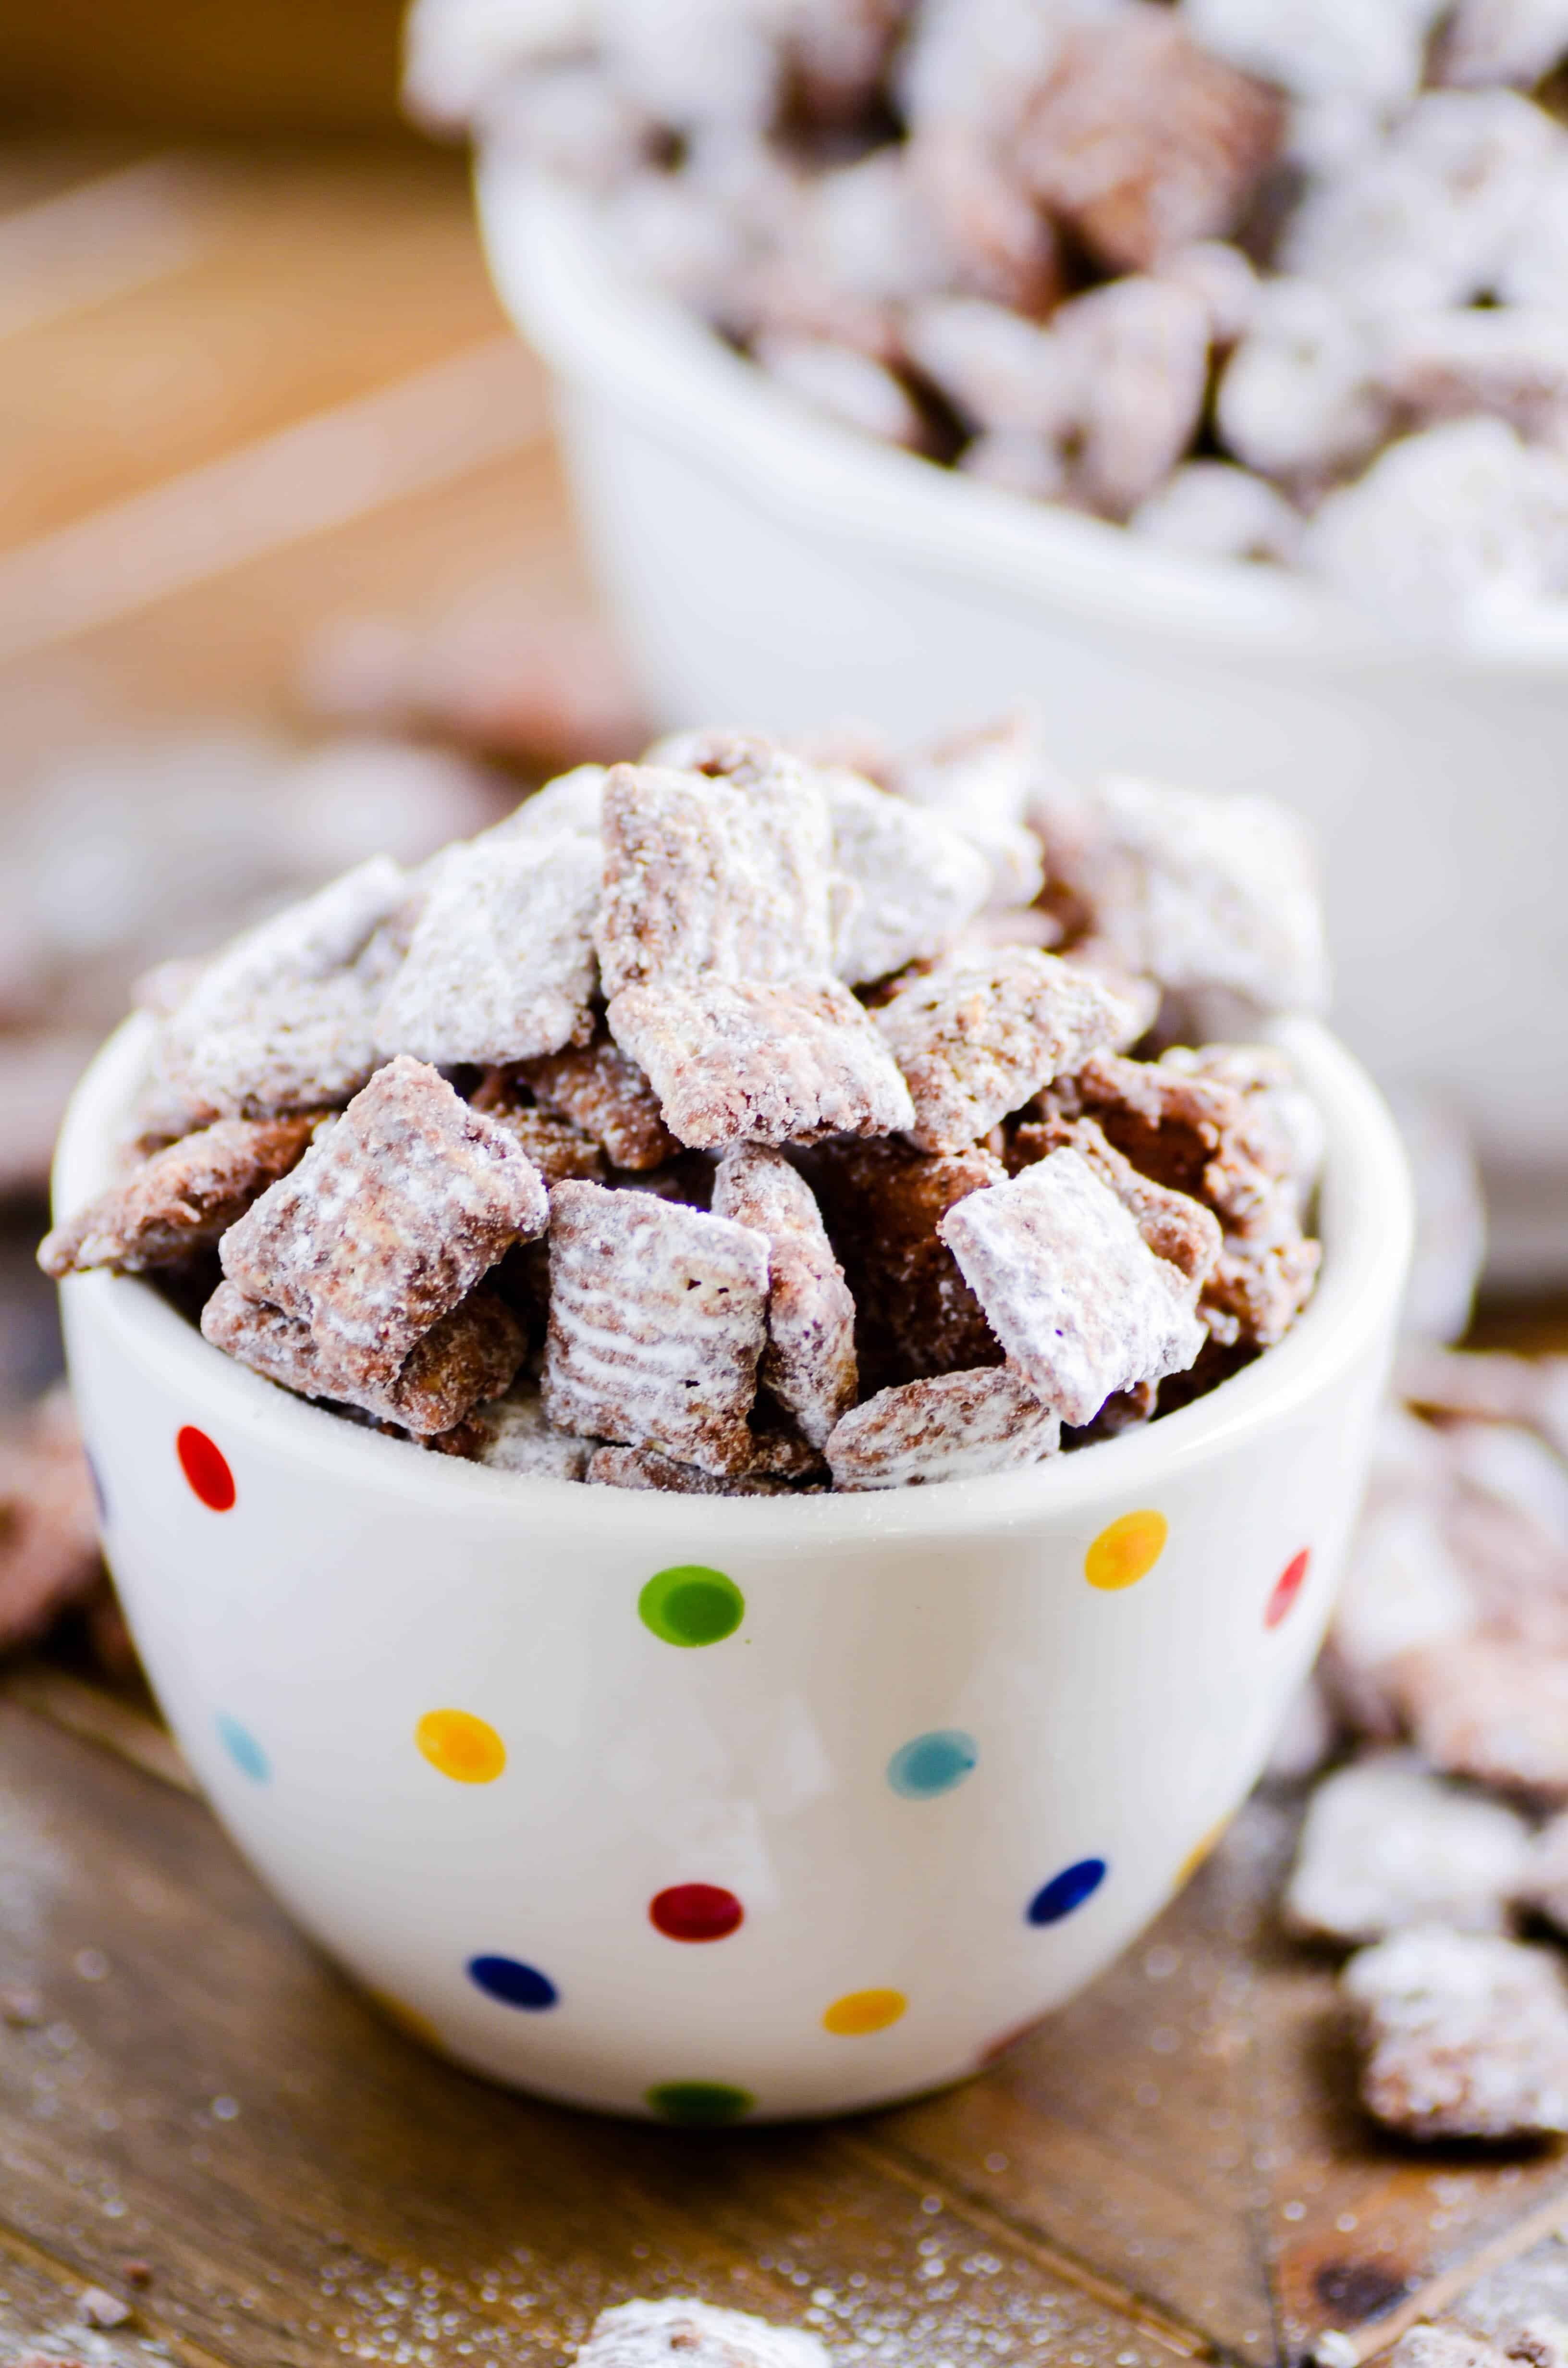 I don't know a single person who doesn't go crazy over muddy buddies! Peanut butter, chocolate, cereal, and powdered sugar-- what's not to love?!